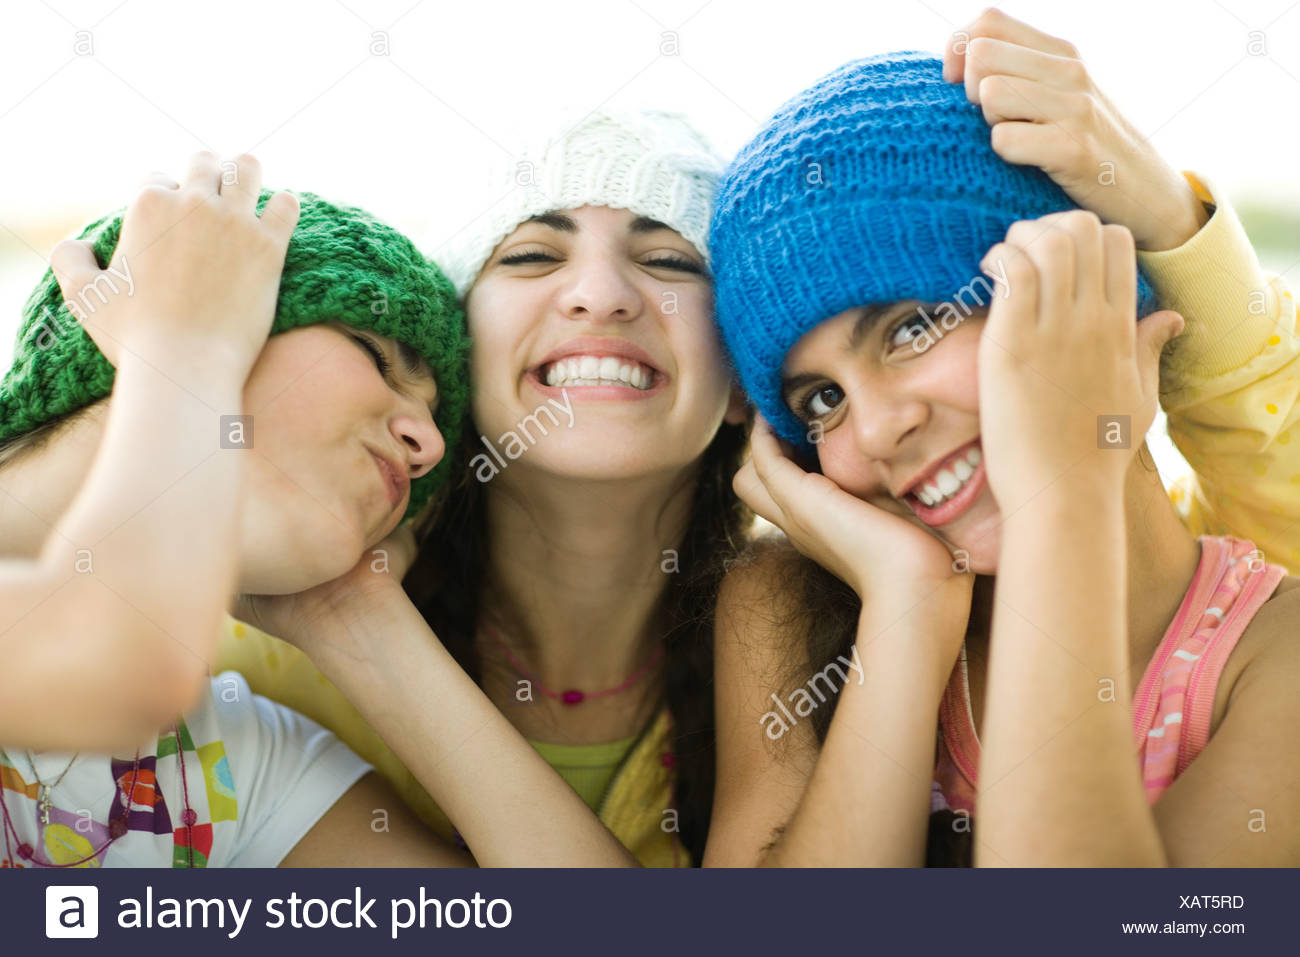 Three young female friends wearing knit hats, smiling - Stock Image